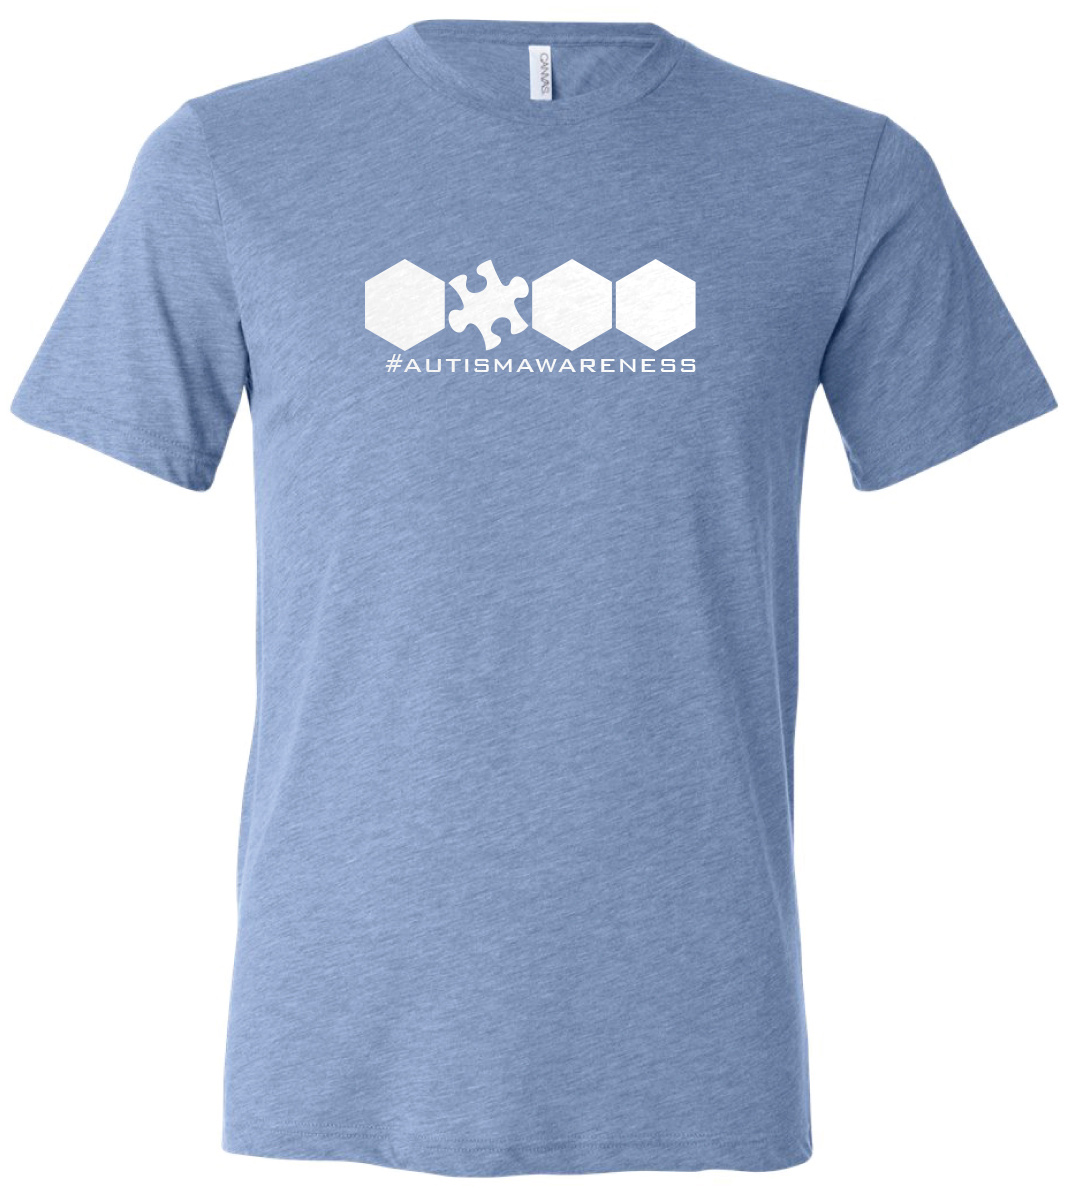 d157d38b552 K4 Autism Awareness T-Shirt | Karben4 Brewing